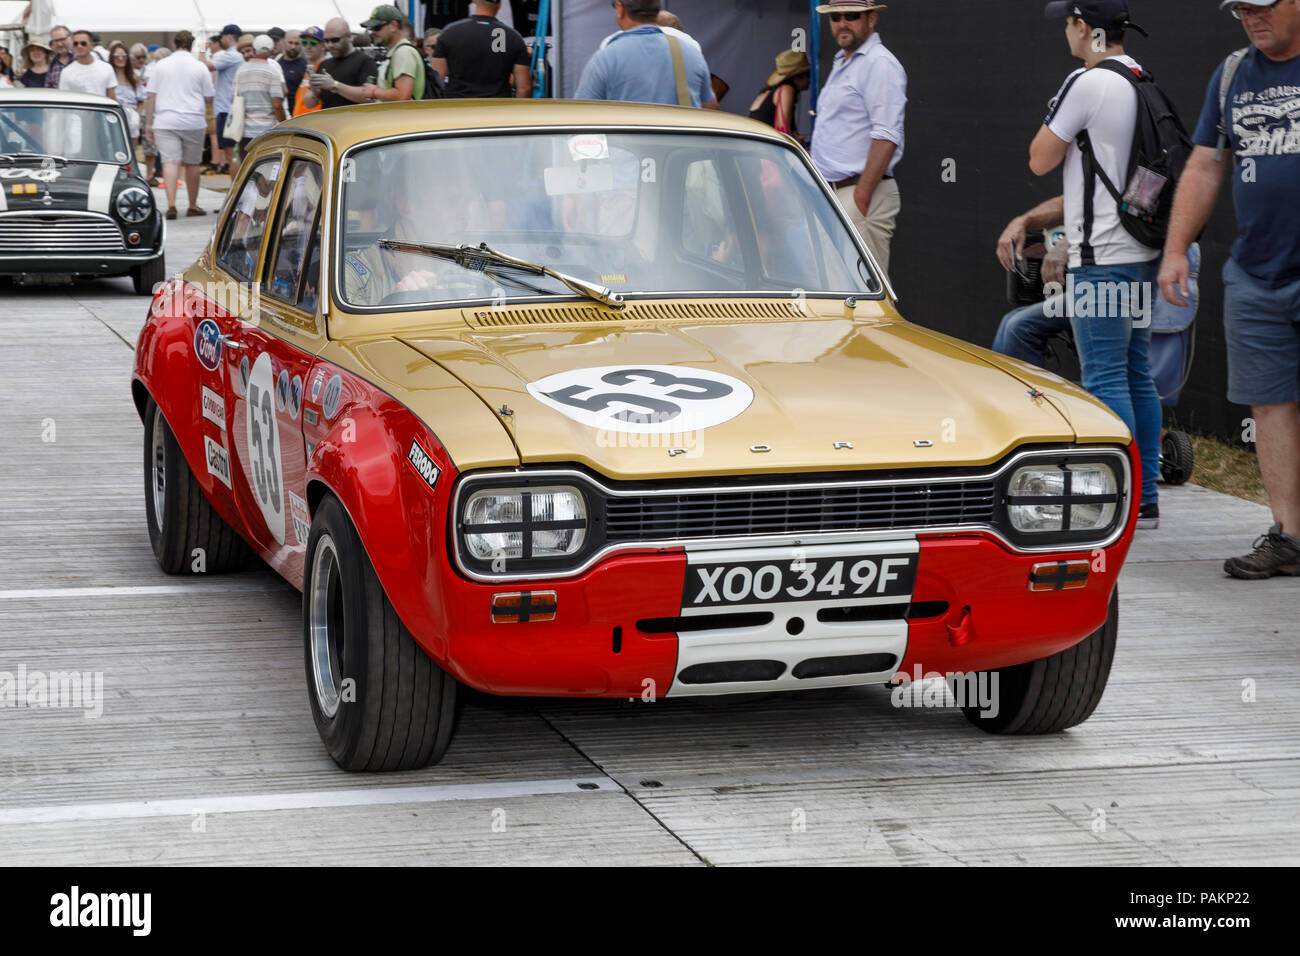 The Allan Mann Racing 1968 Ford Escort Twin Cam with driver Tom Kristensen  in the paddock